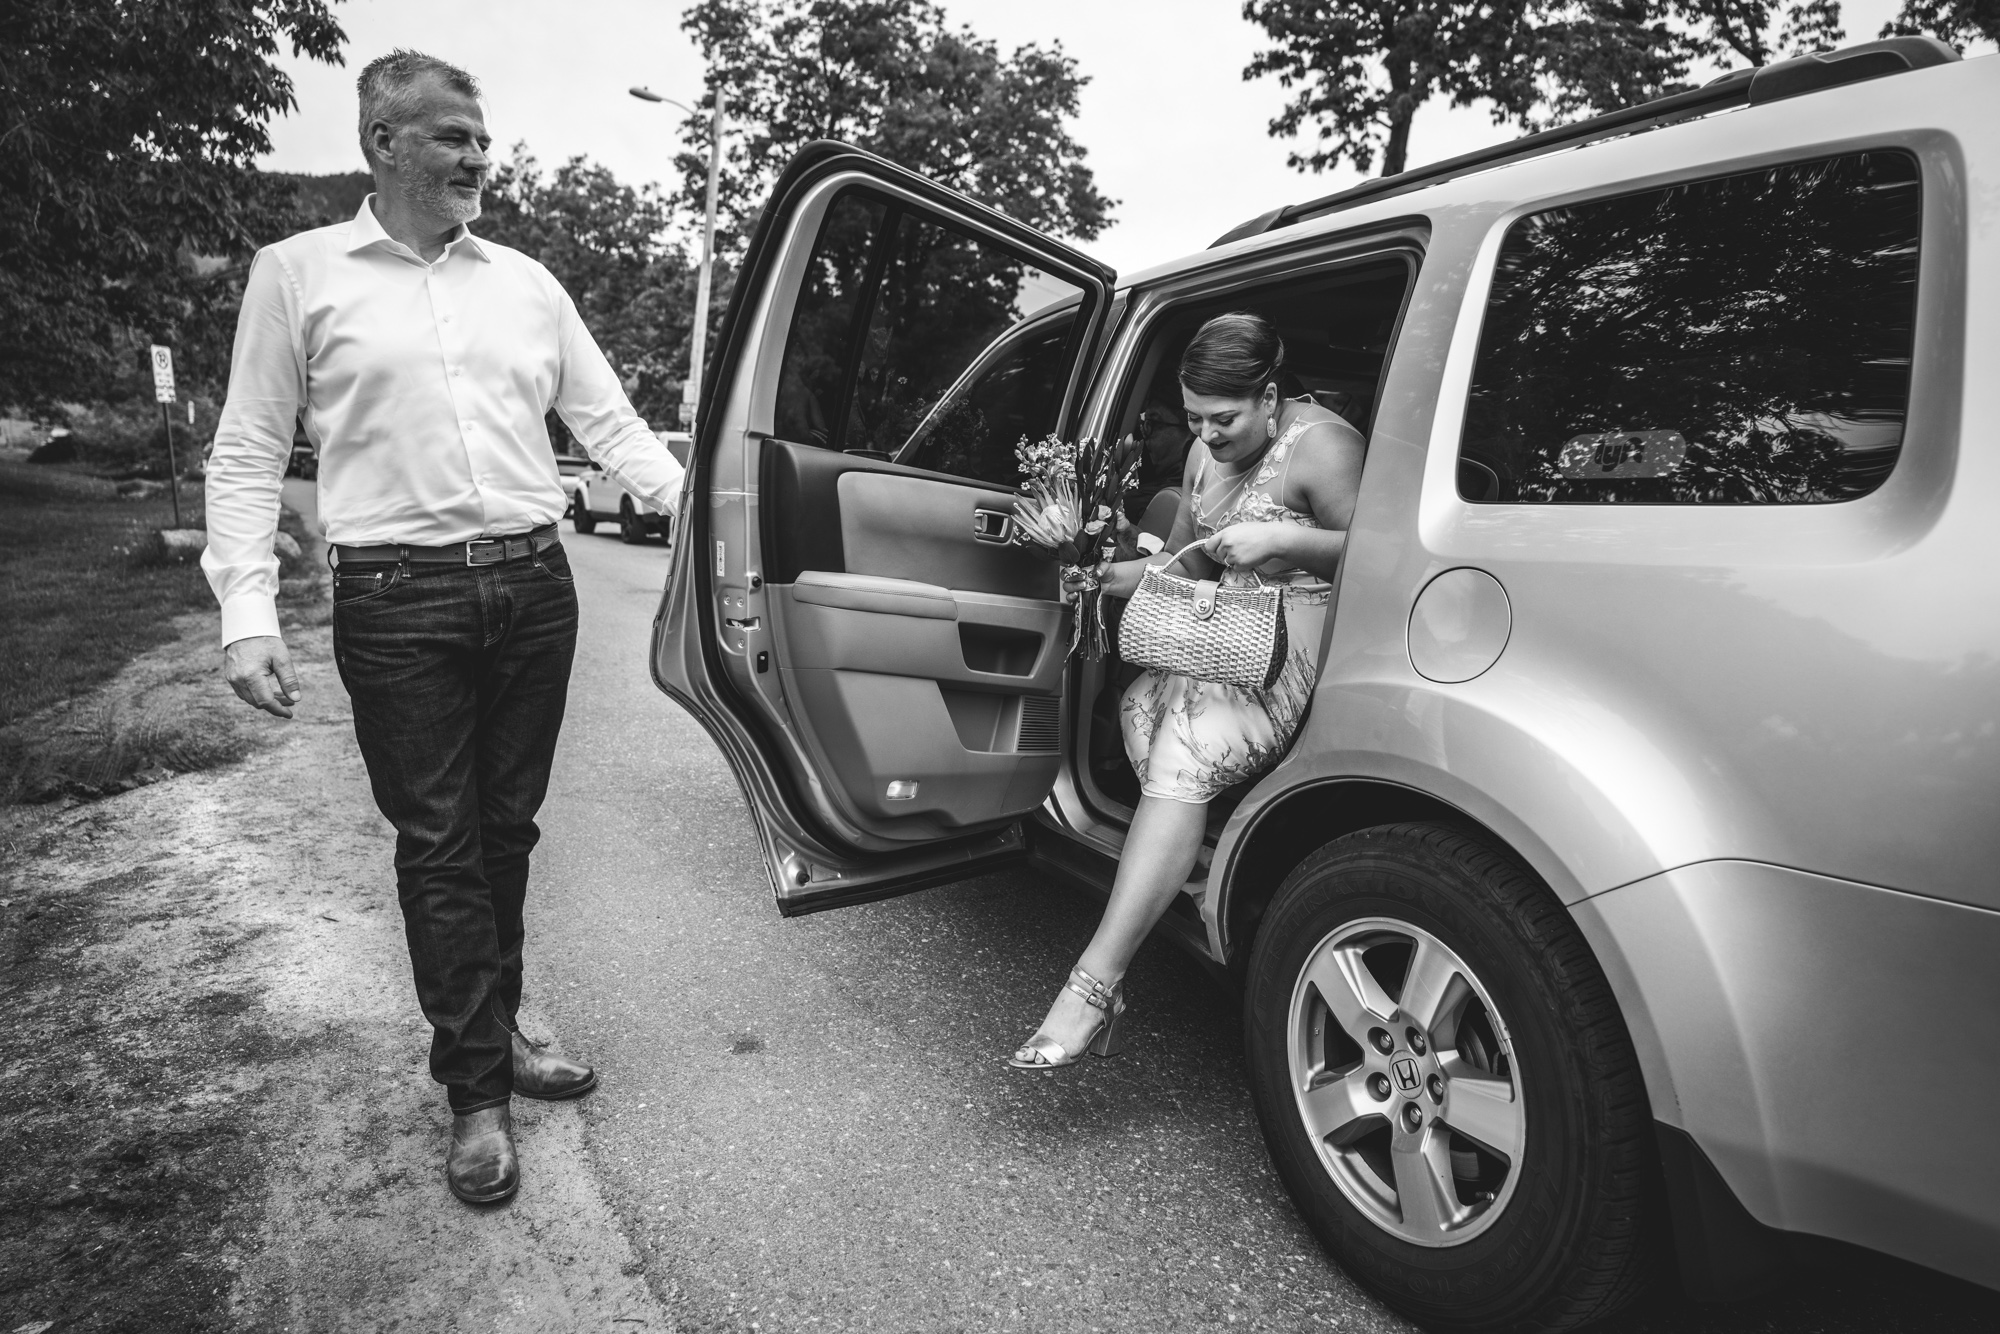 Black and white photo of a father opening the car door for his daughter, the bride, as she gets out in preparation to walk down the aisle.